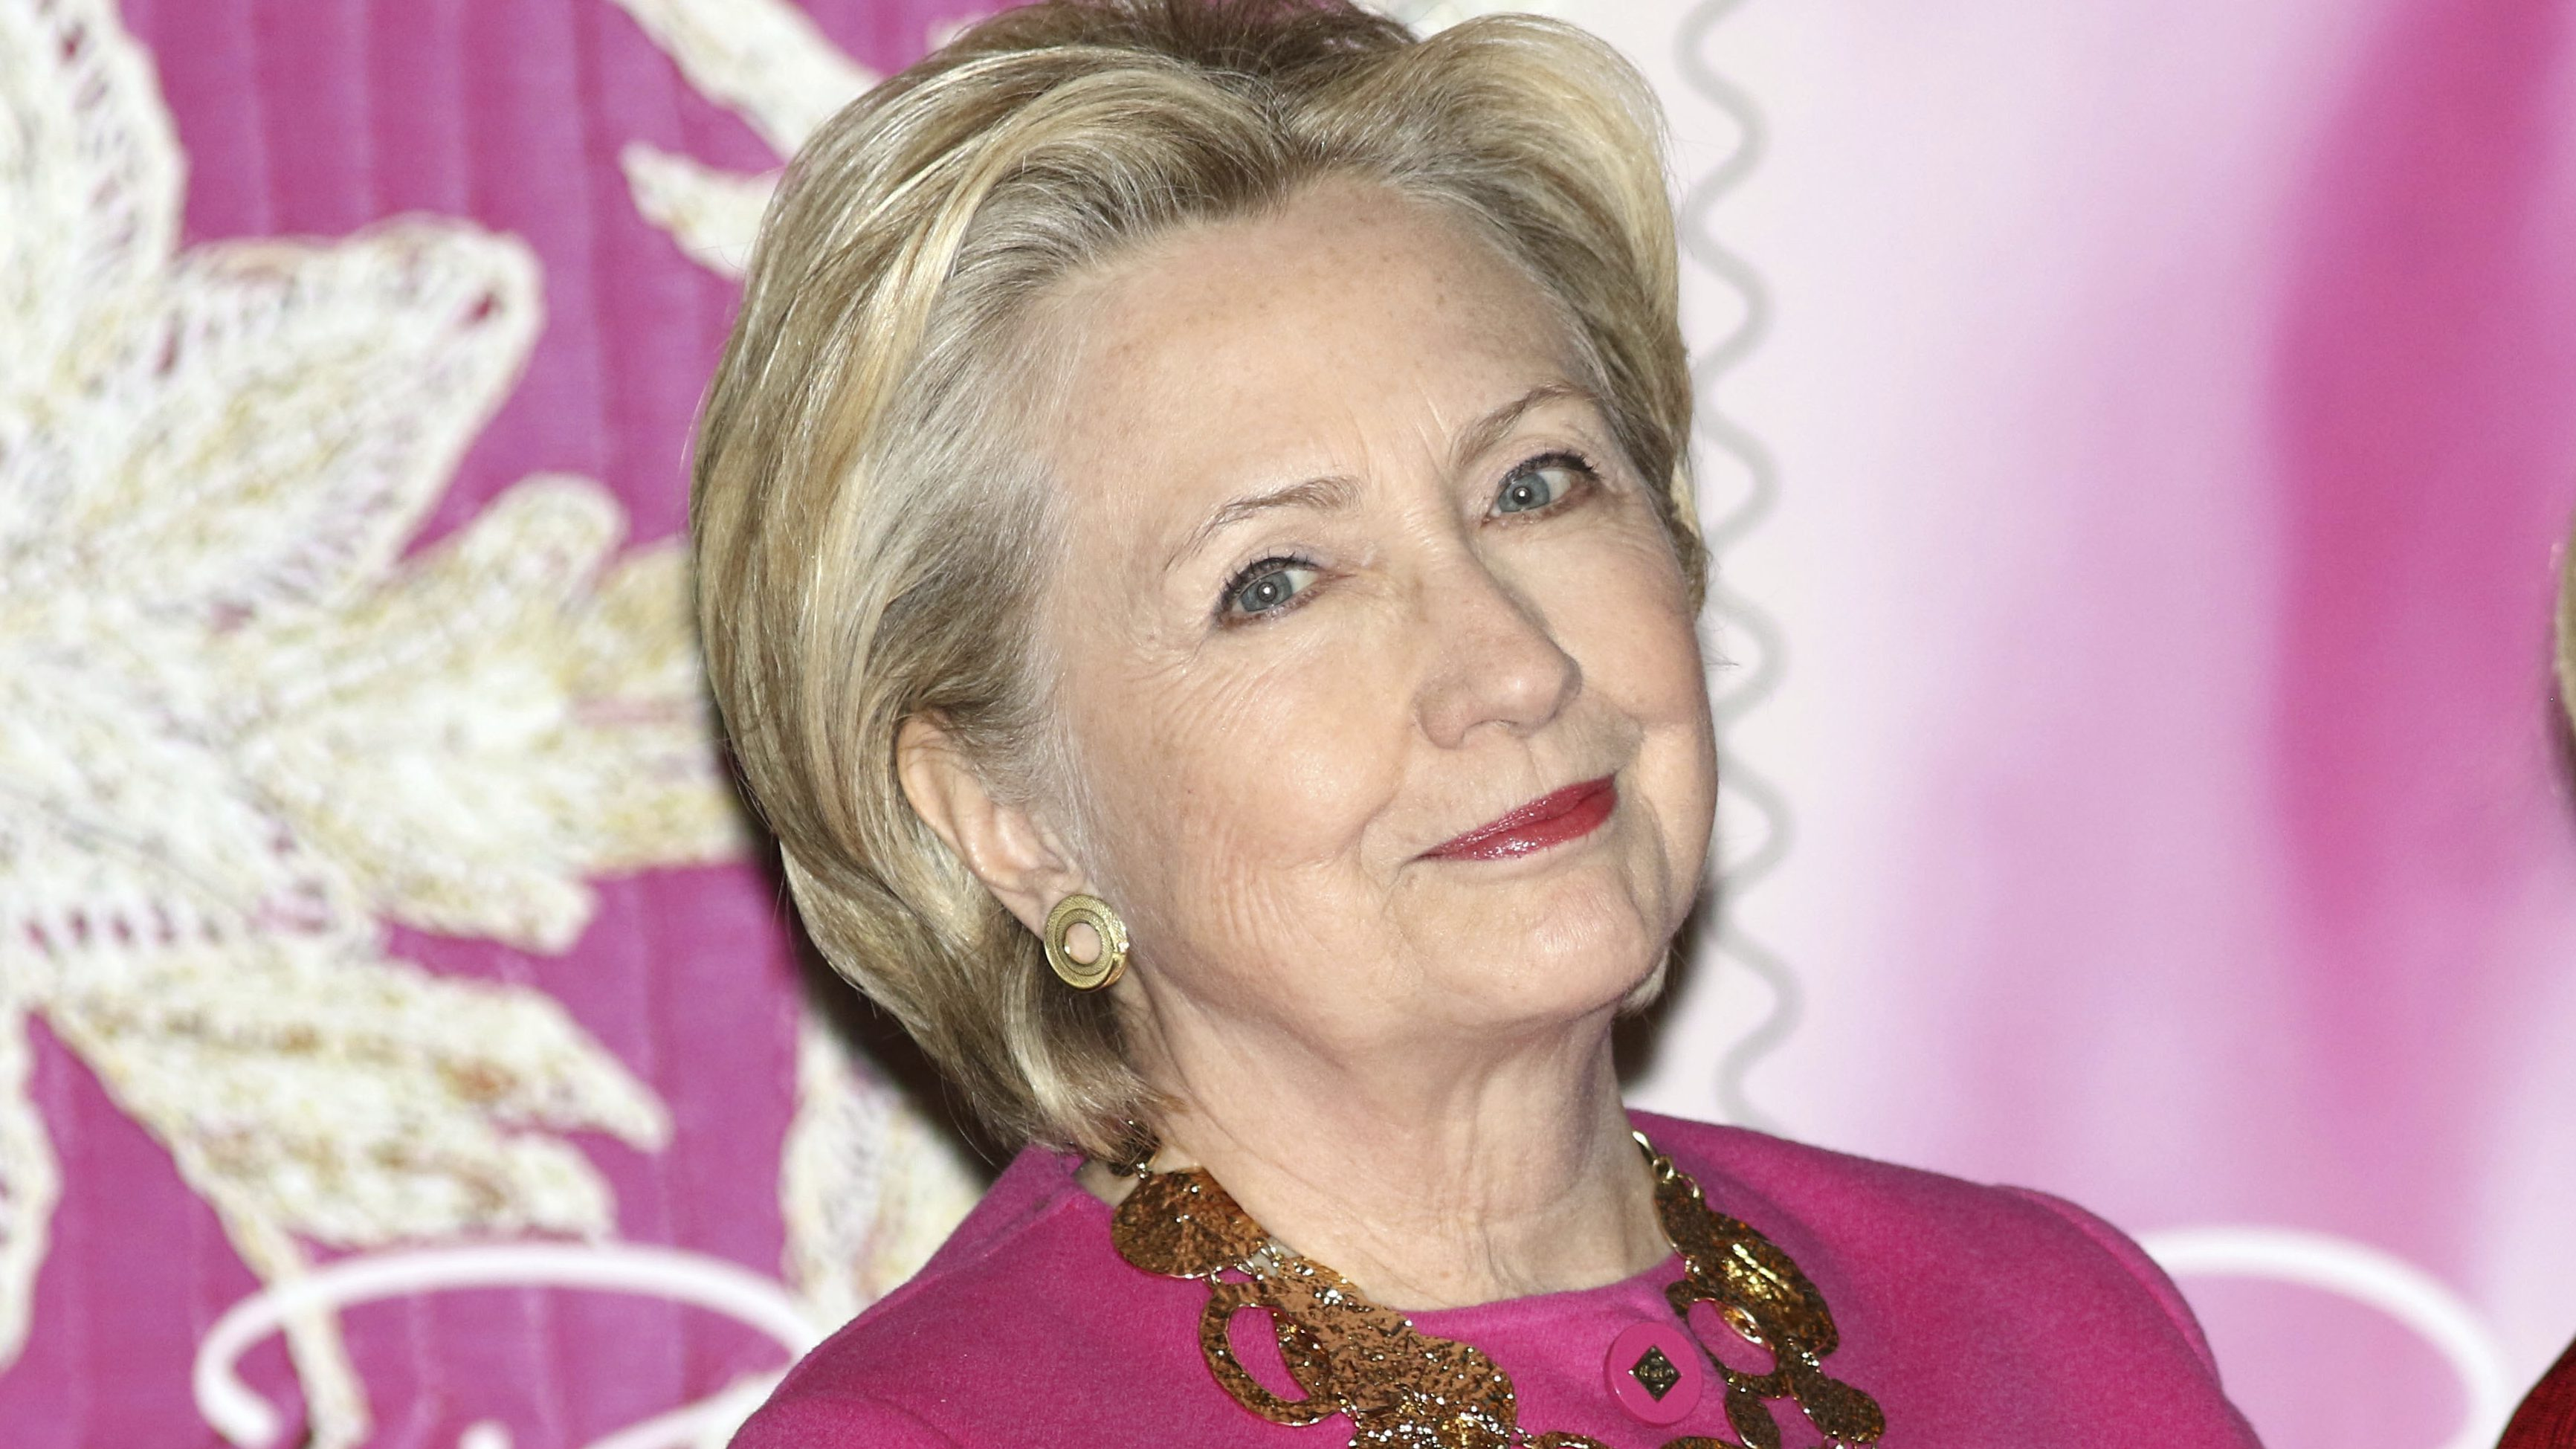 Hillary clinton in a pink jacket